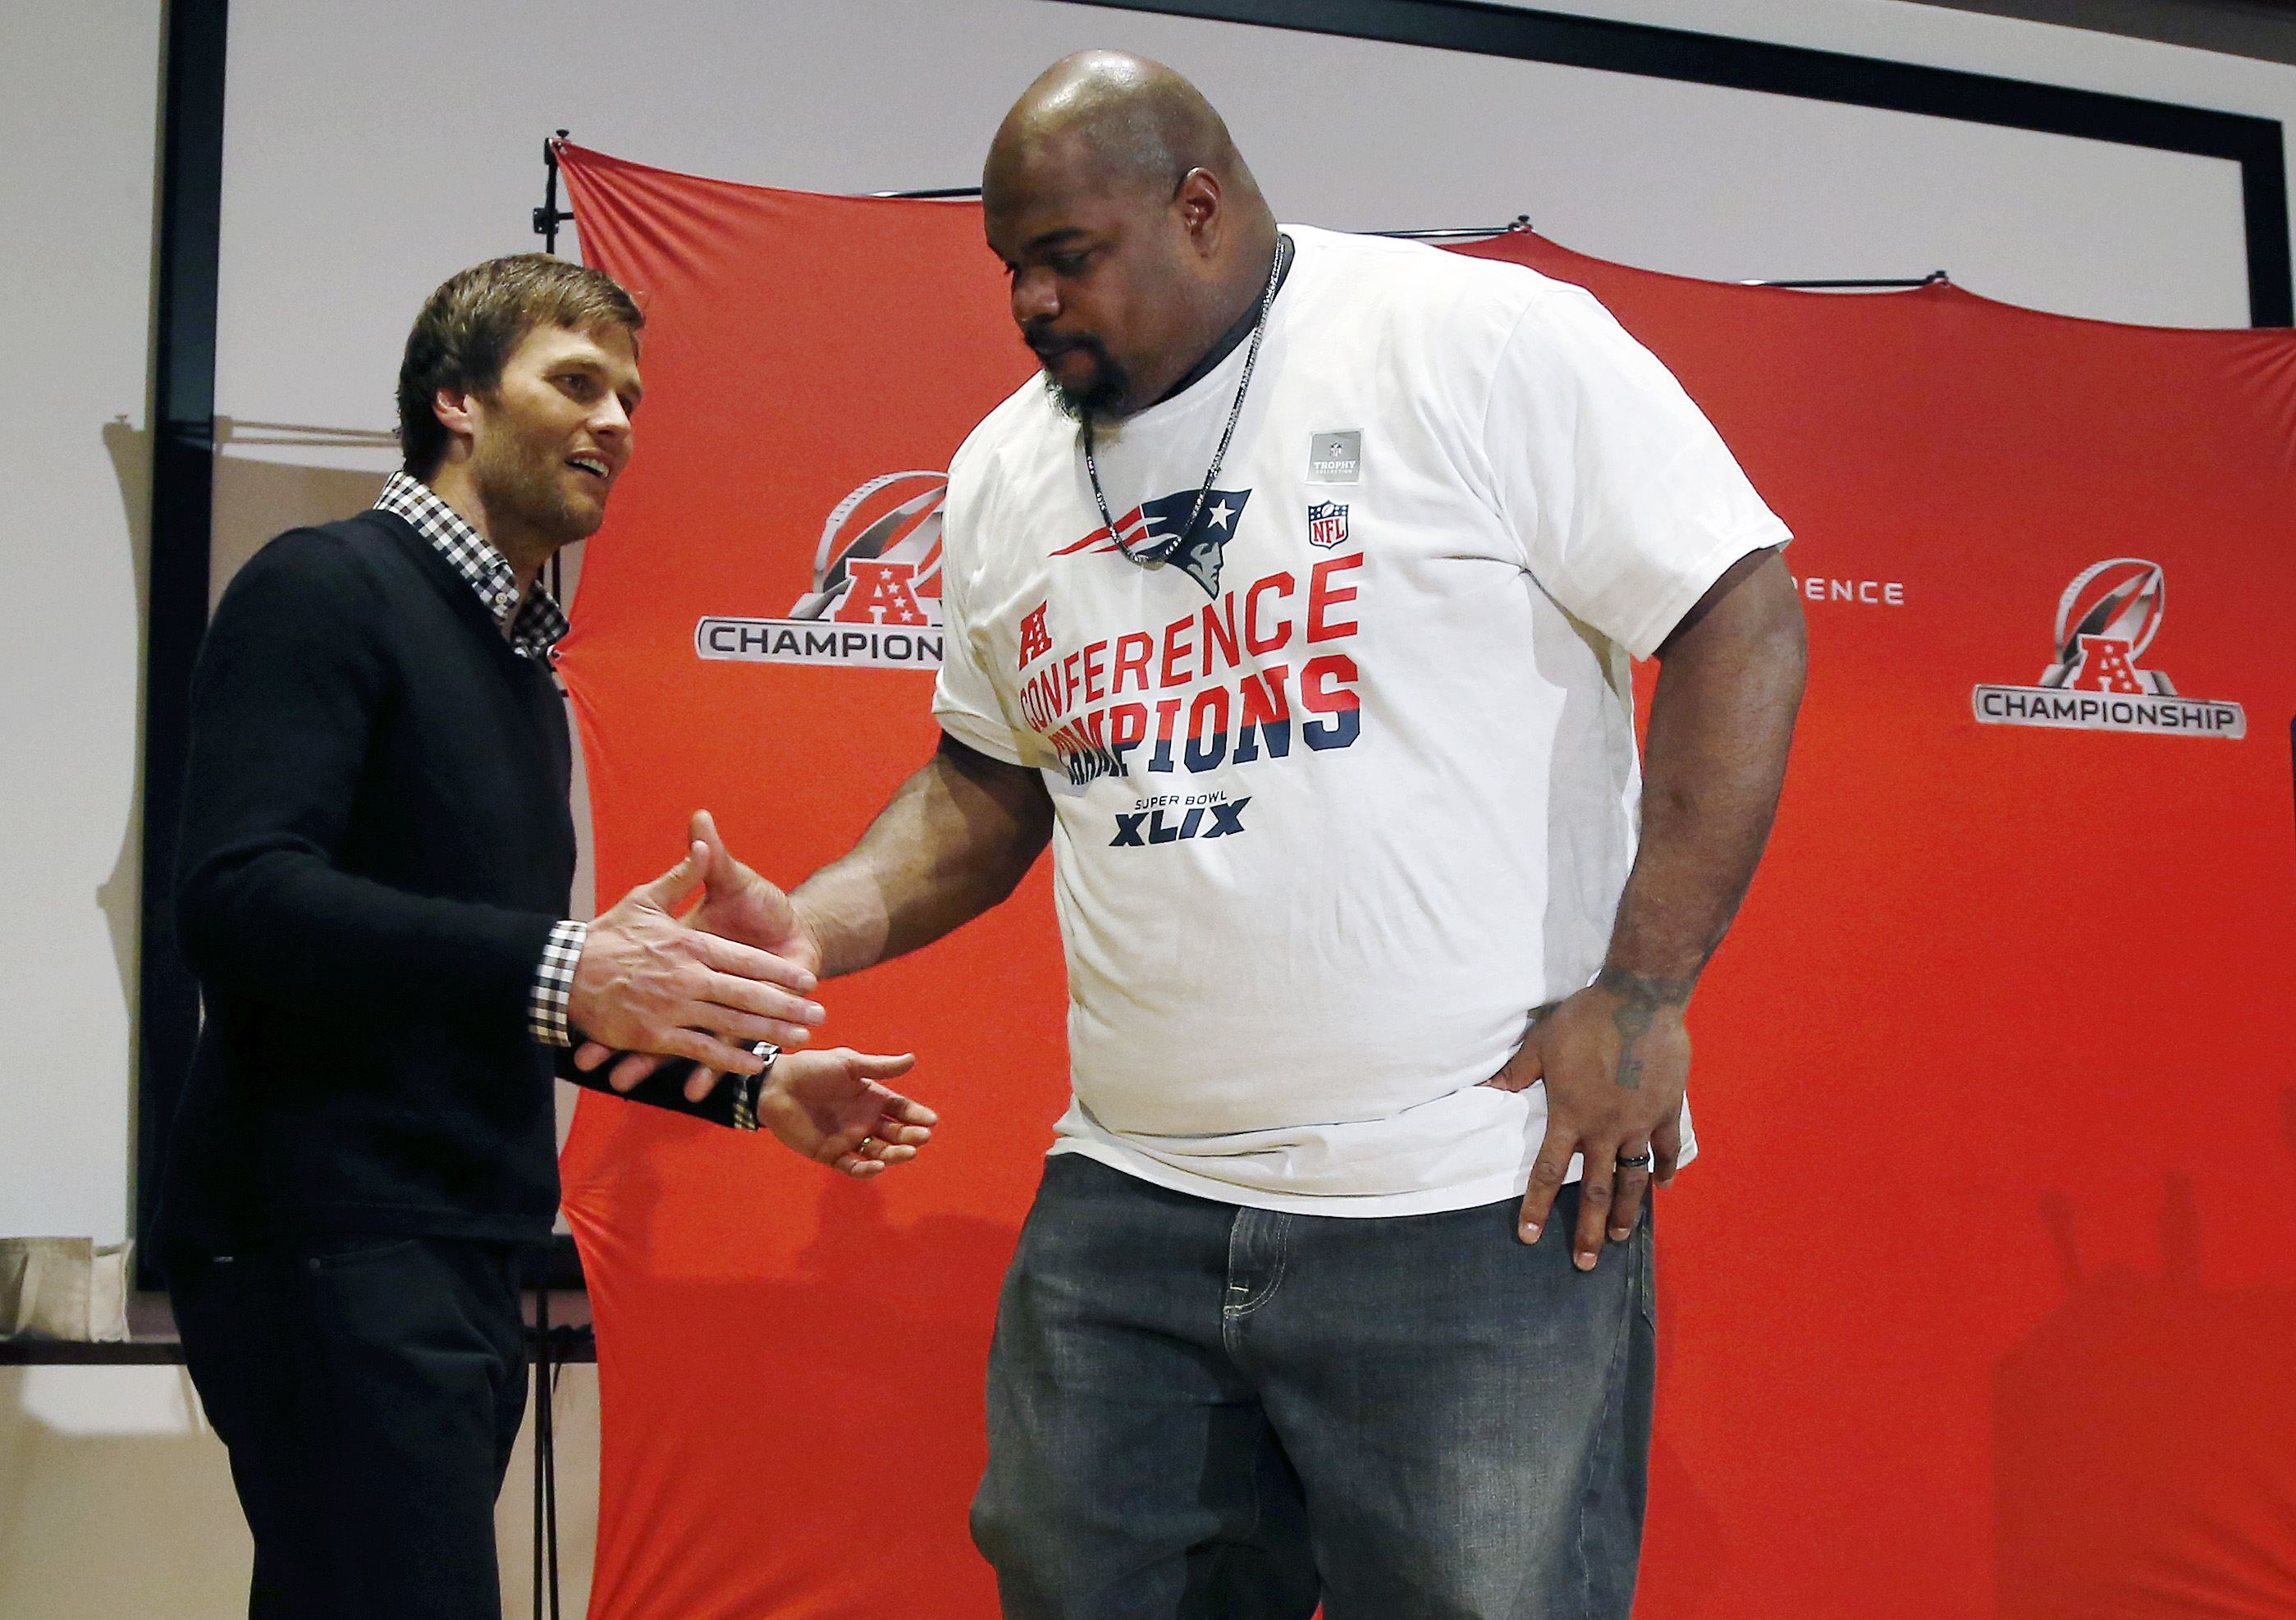 Patriots' lineman Vince Wilfork stops to help accident victim ...